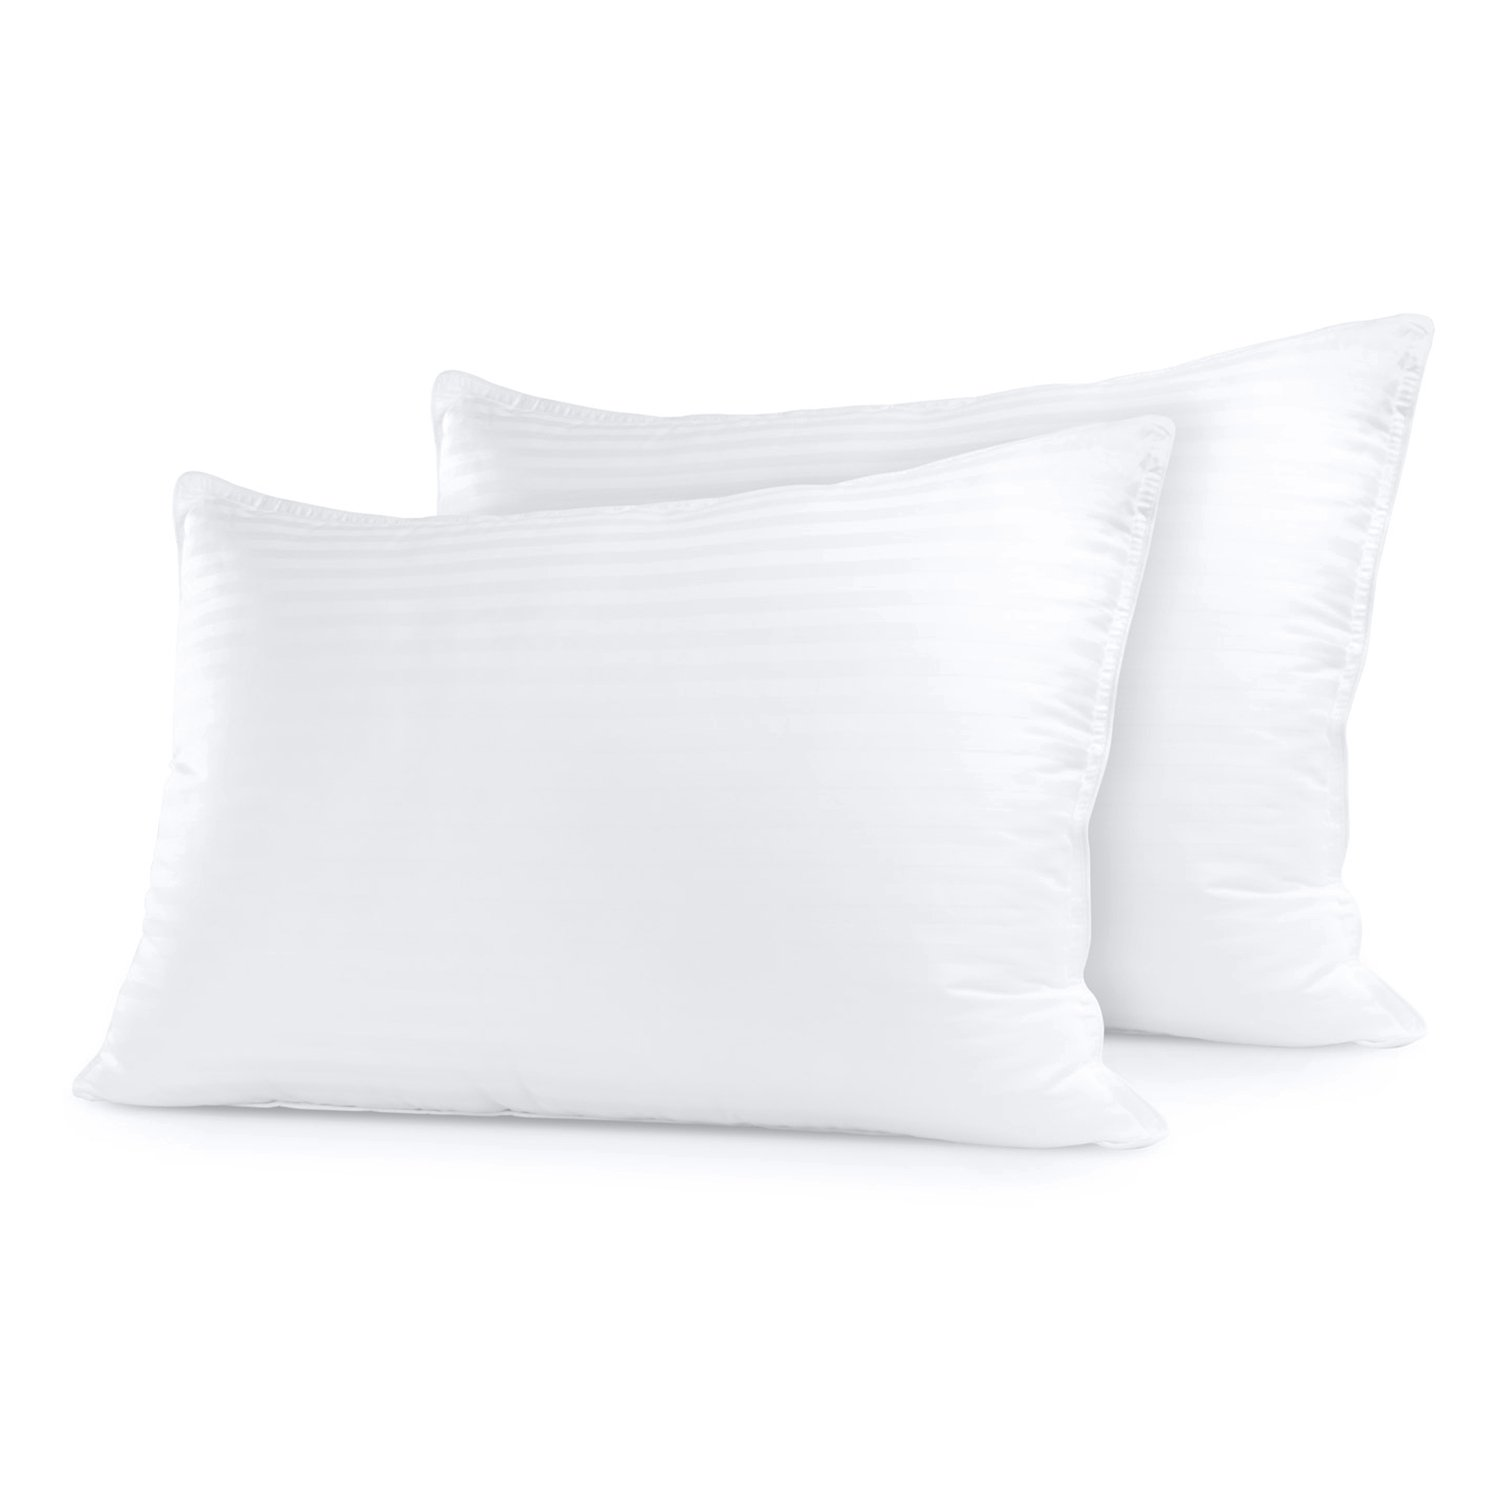 Sleep Restoration Gel Pillow - (2 Pack Queen) Best Hotel Quality Comfortable & Plush Cooling Gel Fiber Filled Pillow - Dust Mite Resistant sleep pillows Sleep pillows review – buying guide and review for sleep pillows 51ZN8M67hUL